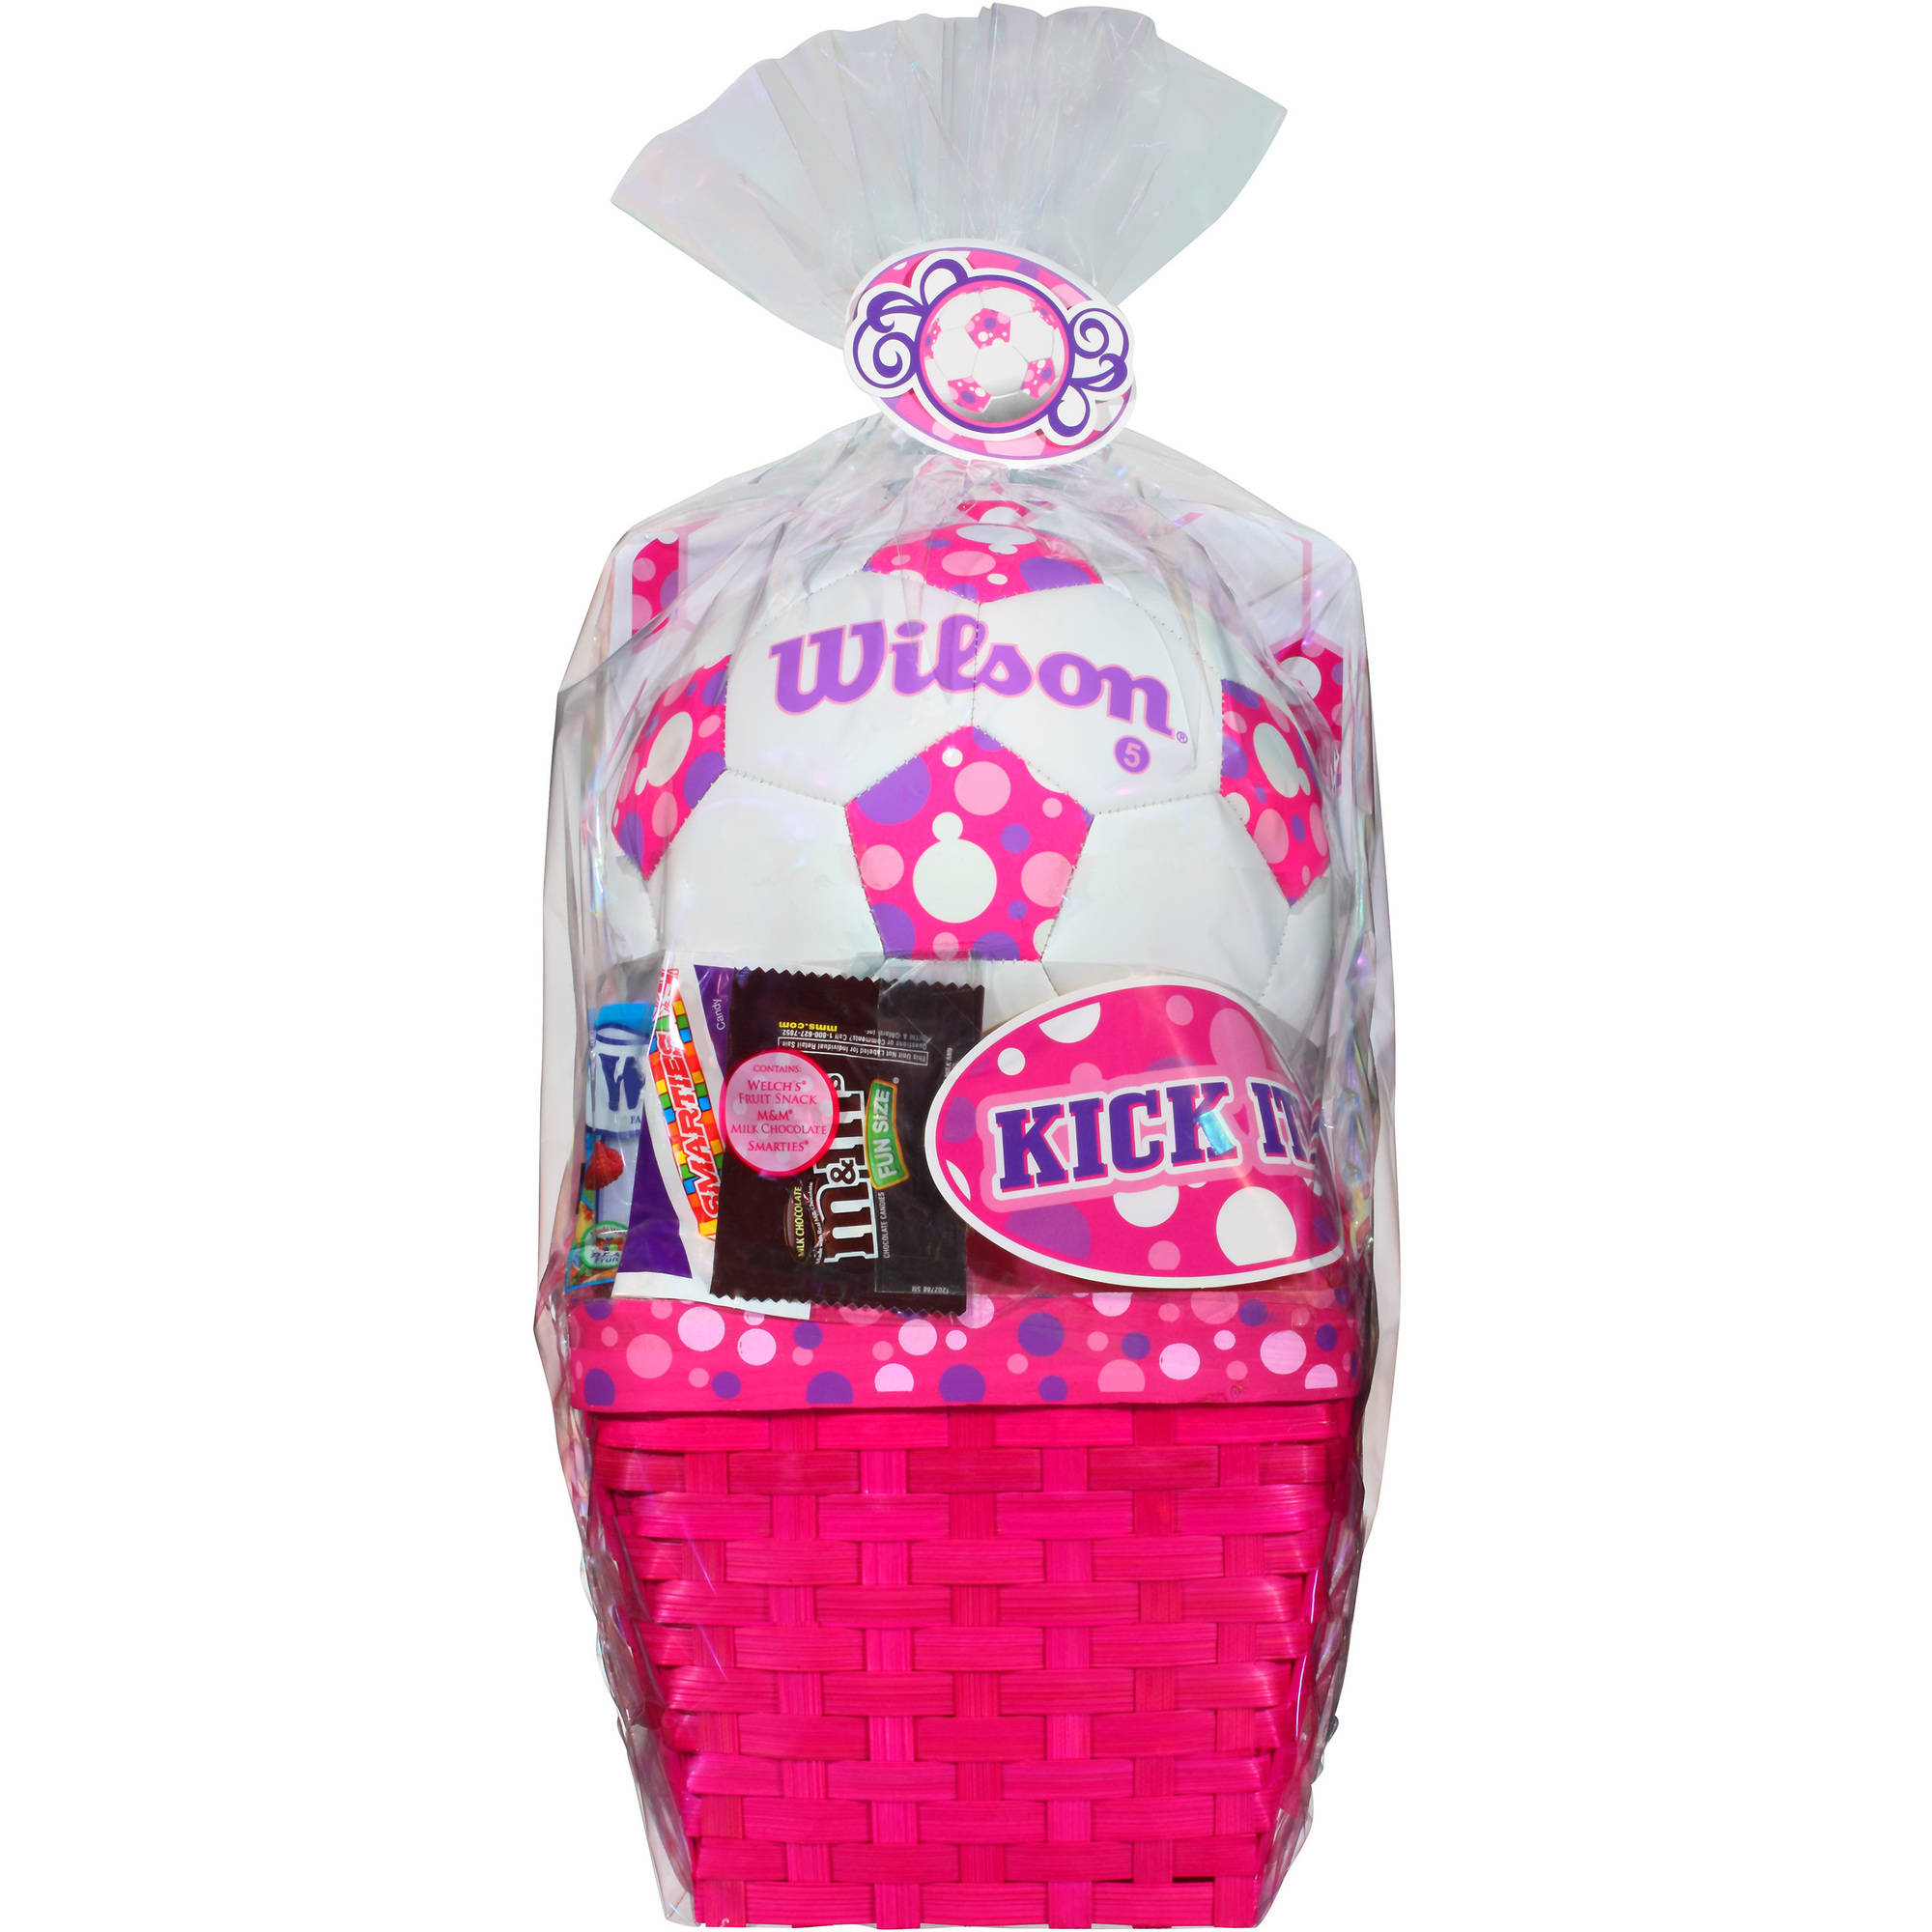 Wondertreats Girls Wilson Soccerball Kick It! Easter Basket